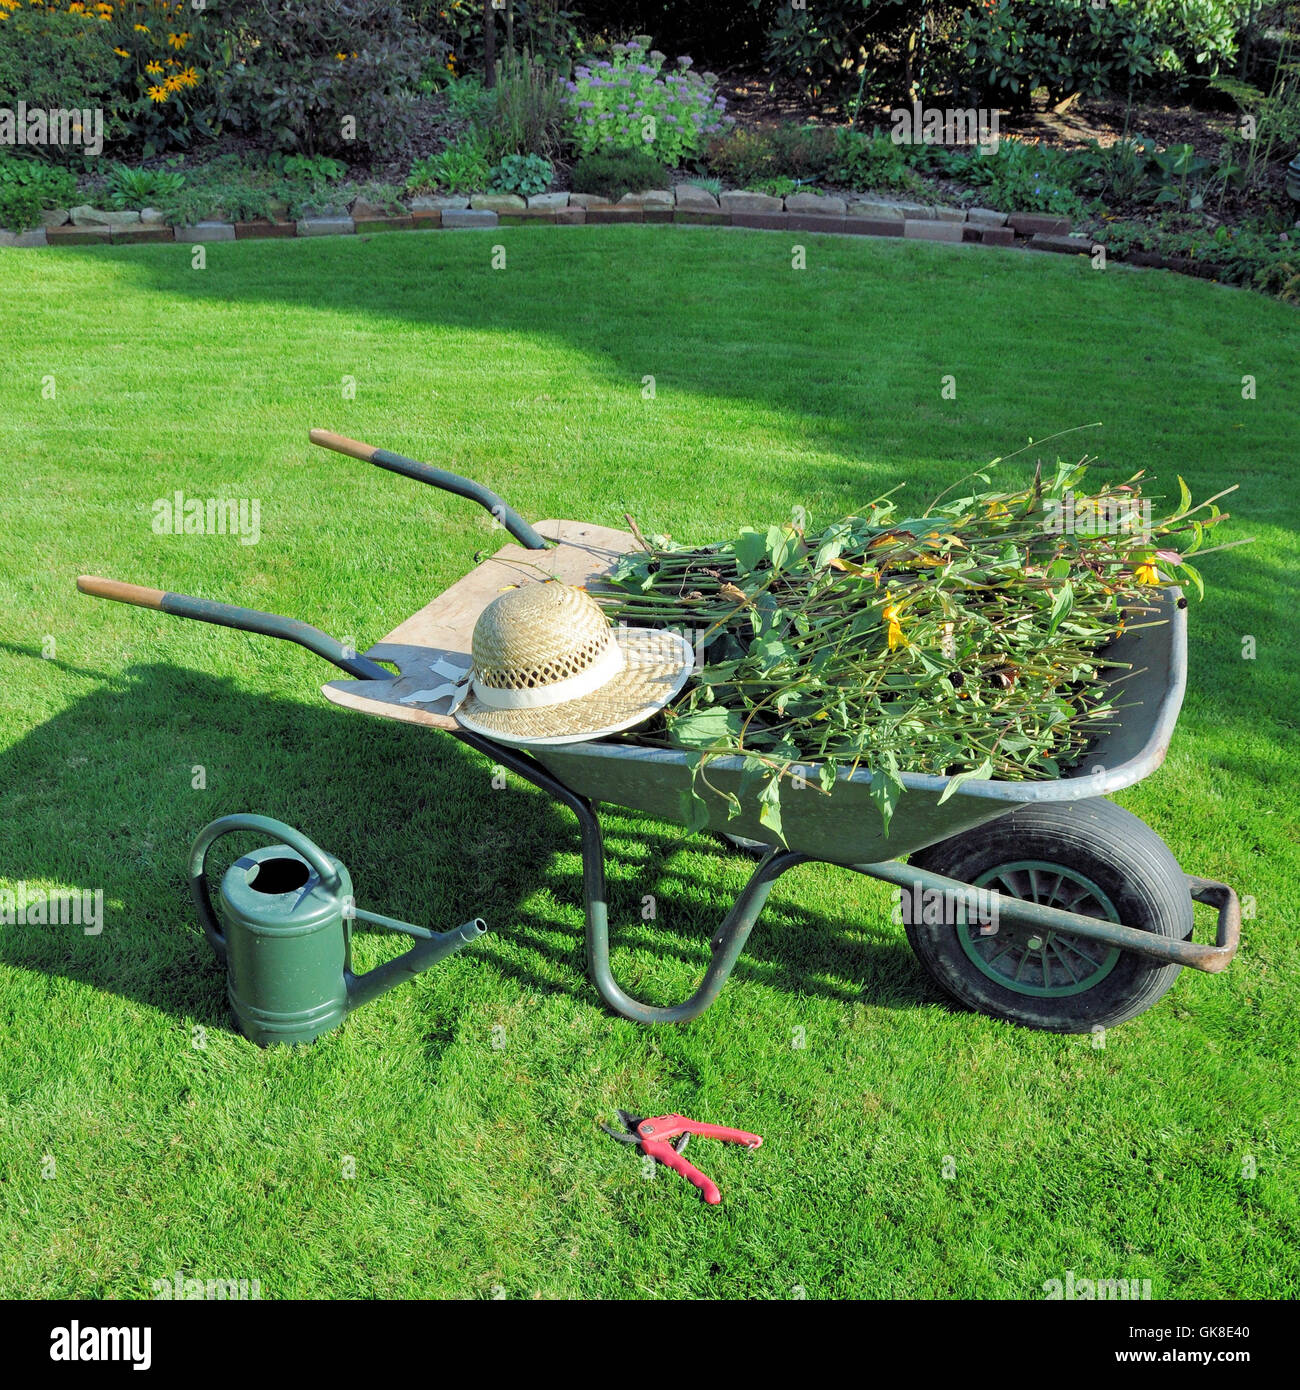 garden cart with green waste Stock Photo